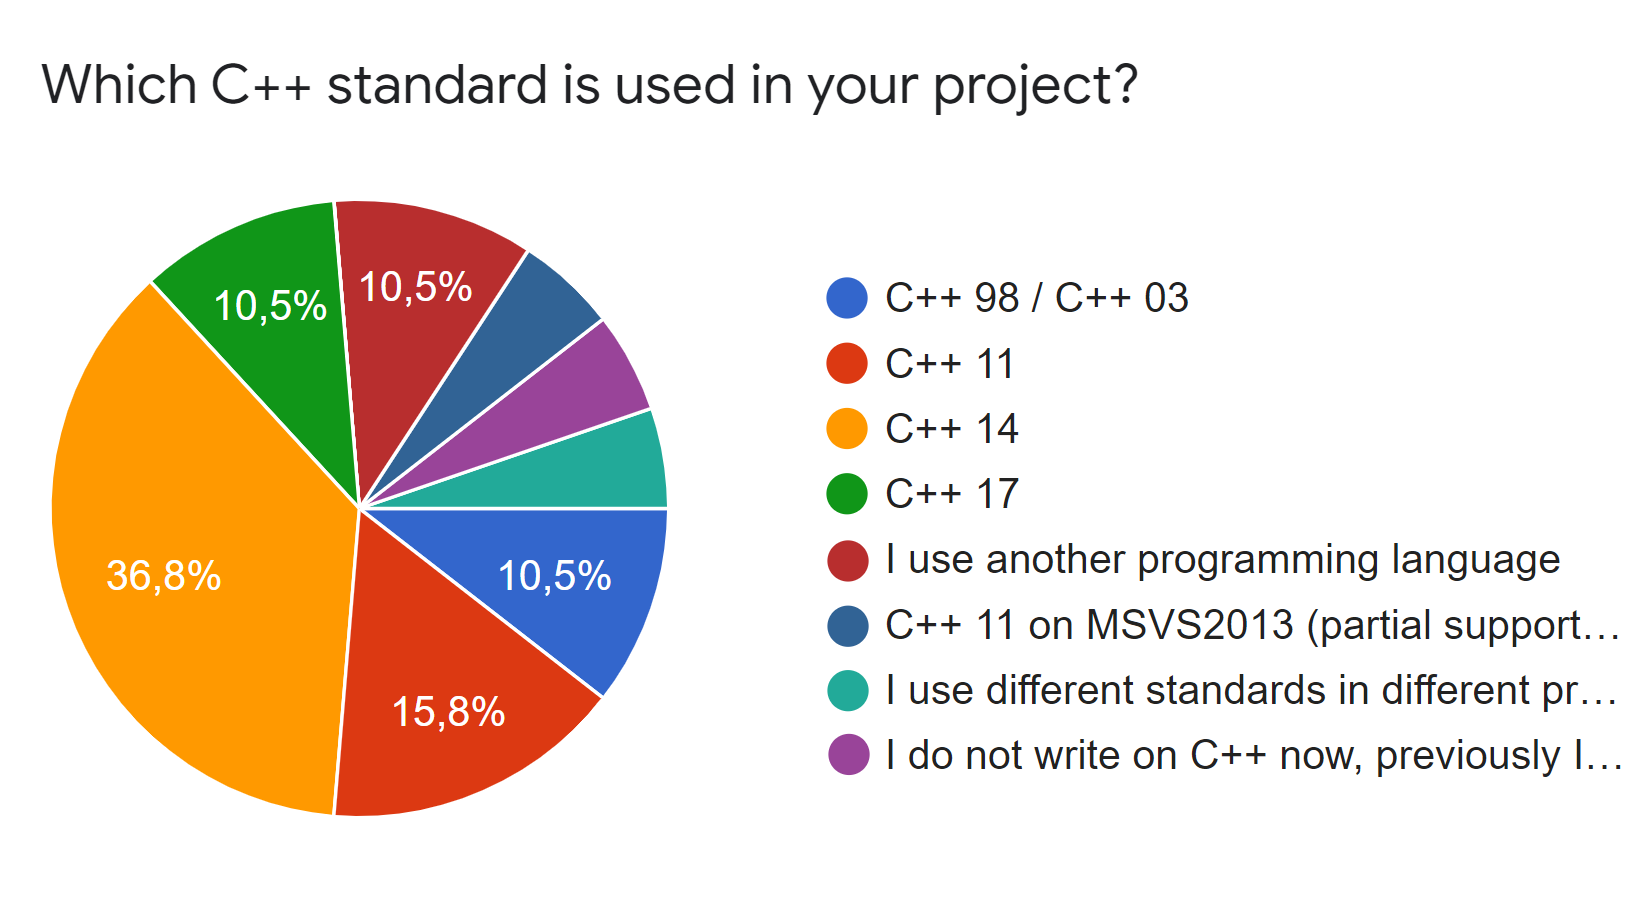 C++ standards we use